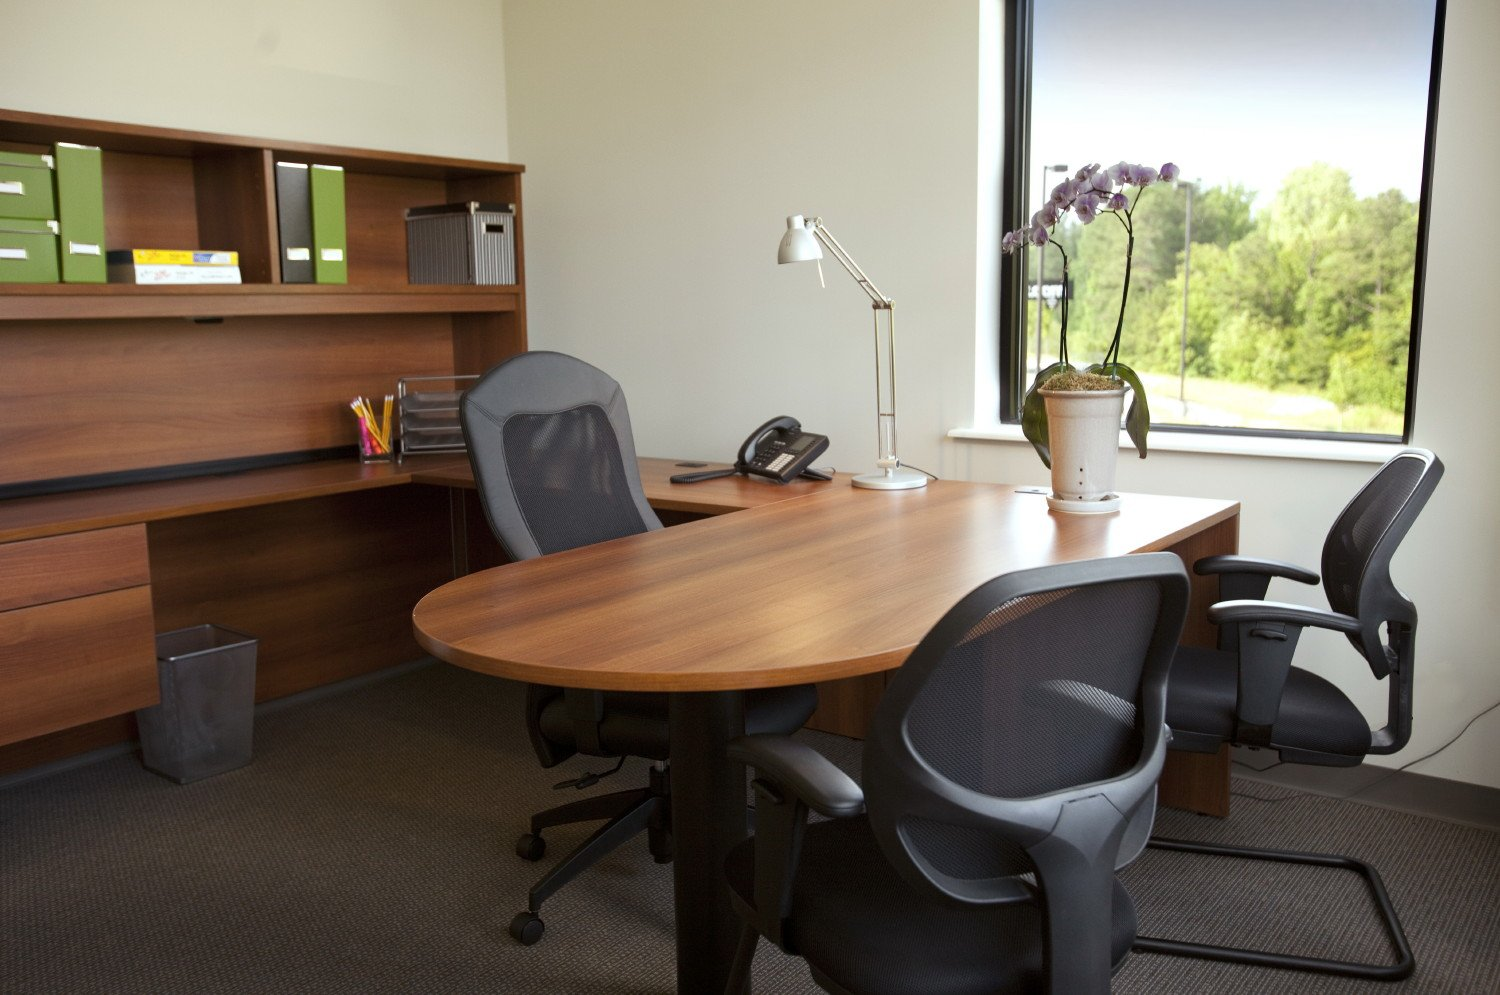 How to have the most leverage in your new fundraising - Small office space rental collection ...